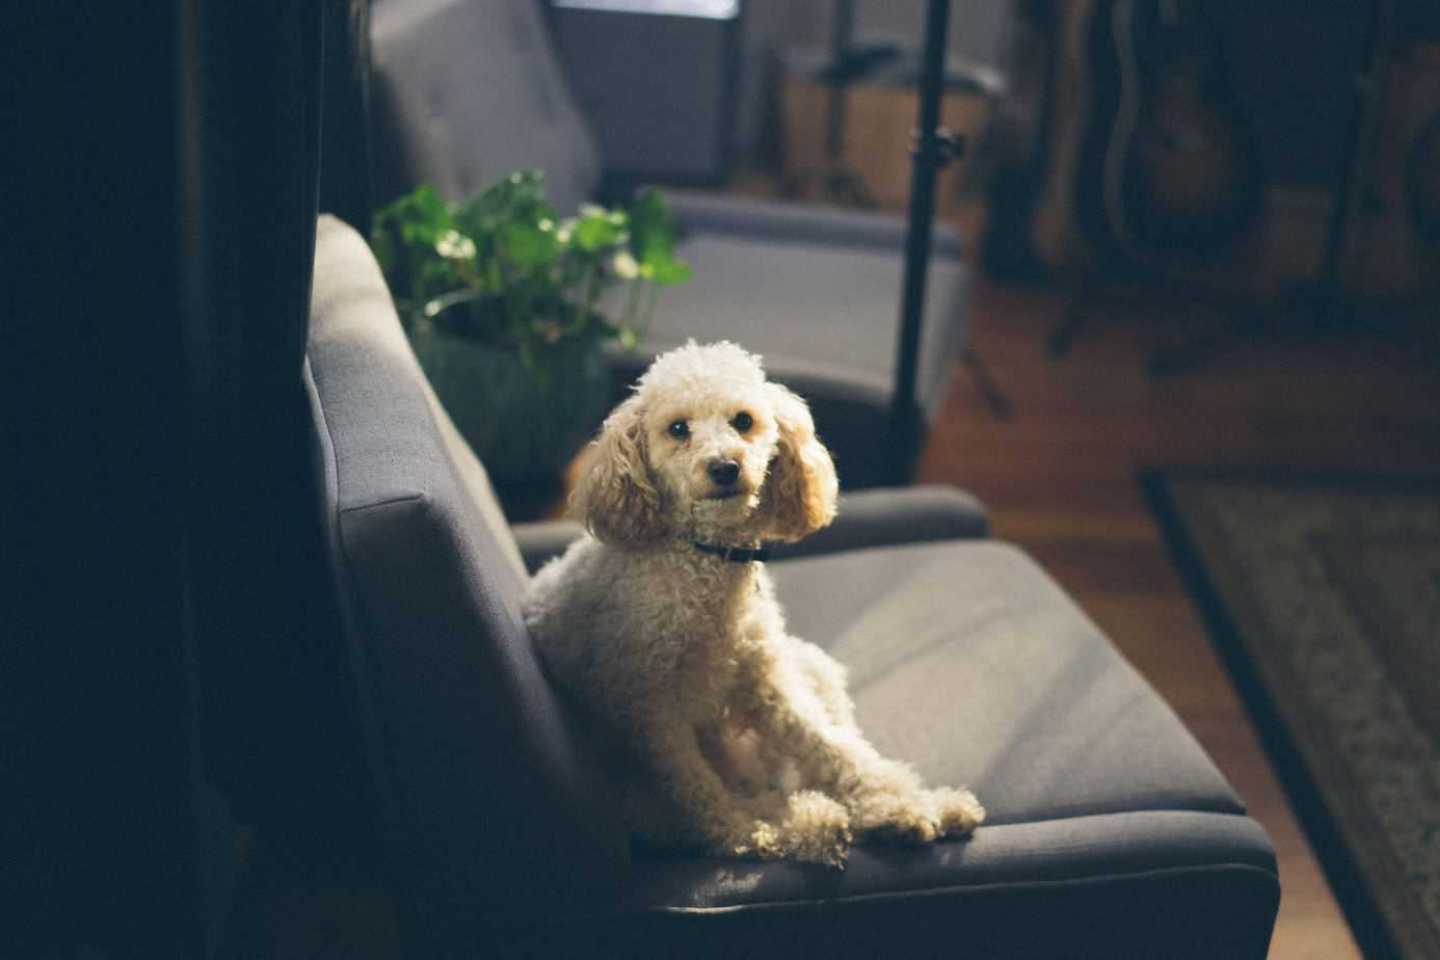 5 Ideas for pet-friendly décor